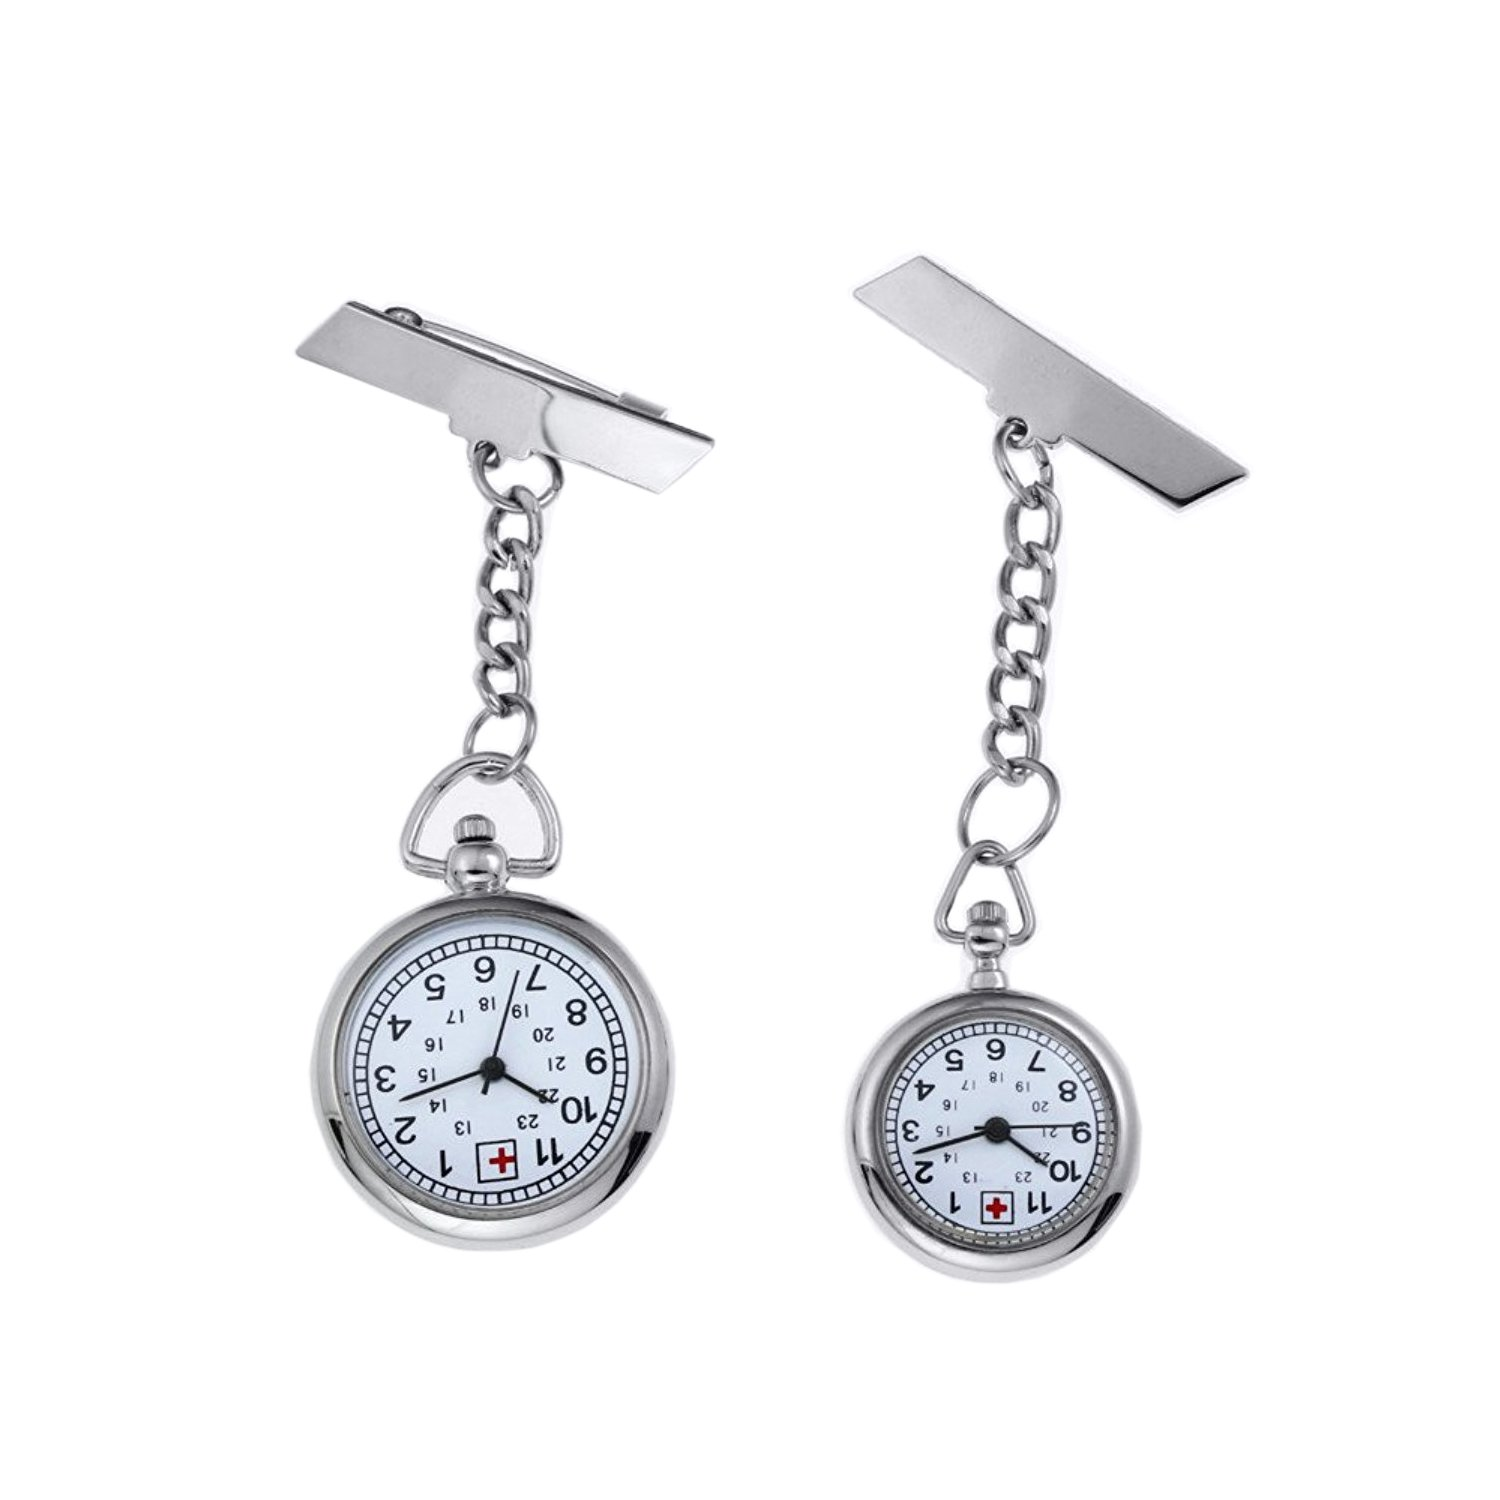 Silver Women's Fashion Nurse Clip-on Fob Brooch Hanging Pocket Watch, Pack of 2